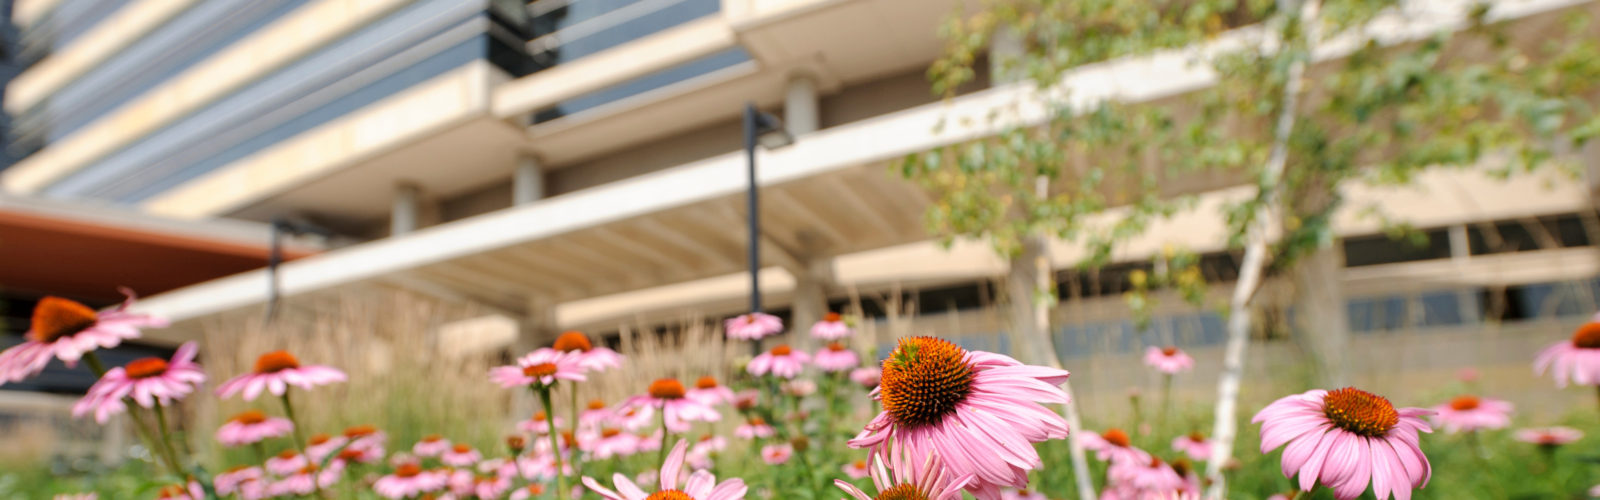 Purple coneflowers bloom in front of the exterior of the Wisconsin Institutes for Medical Research (WIMR)